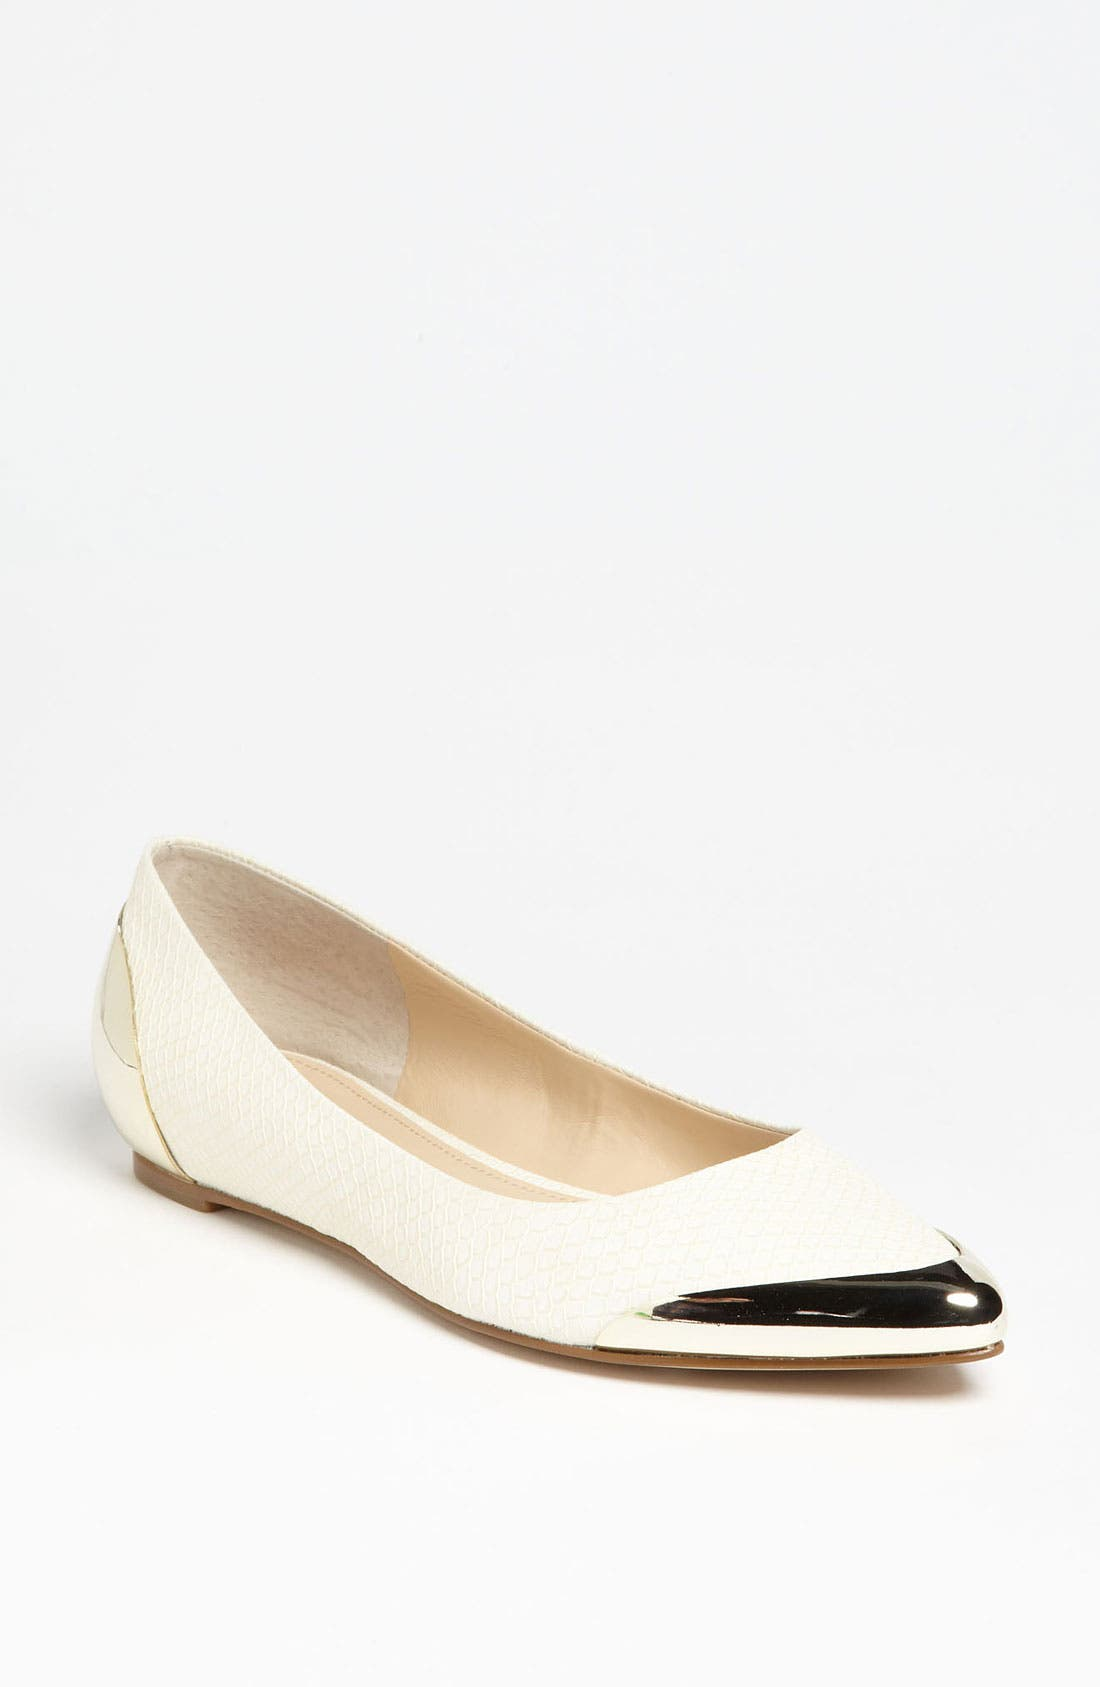 Alternate Image 1 Selected - Enzo Angiolini 'Danville' Flat